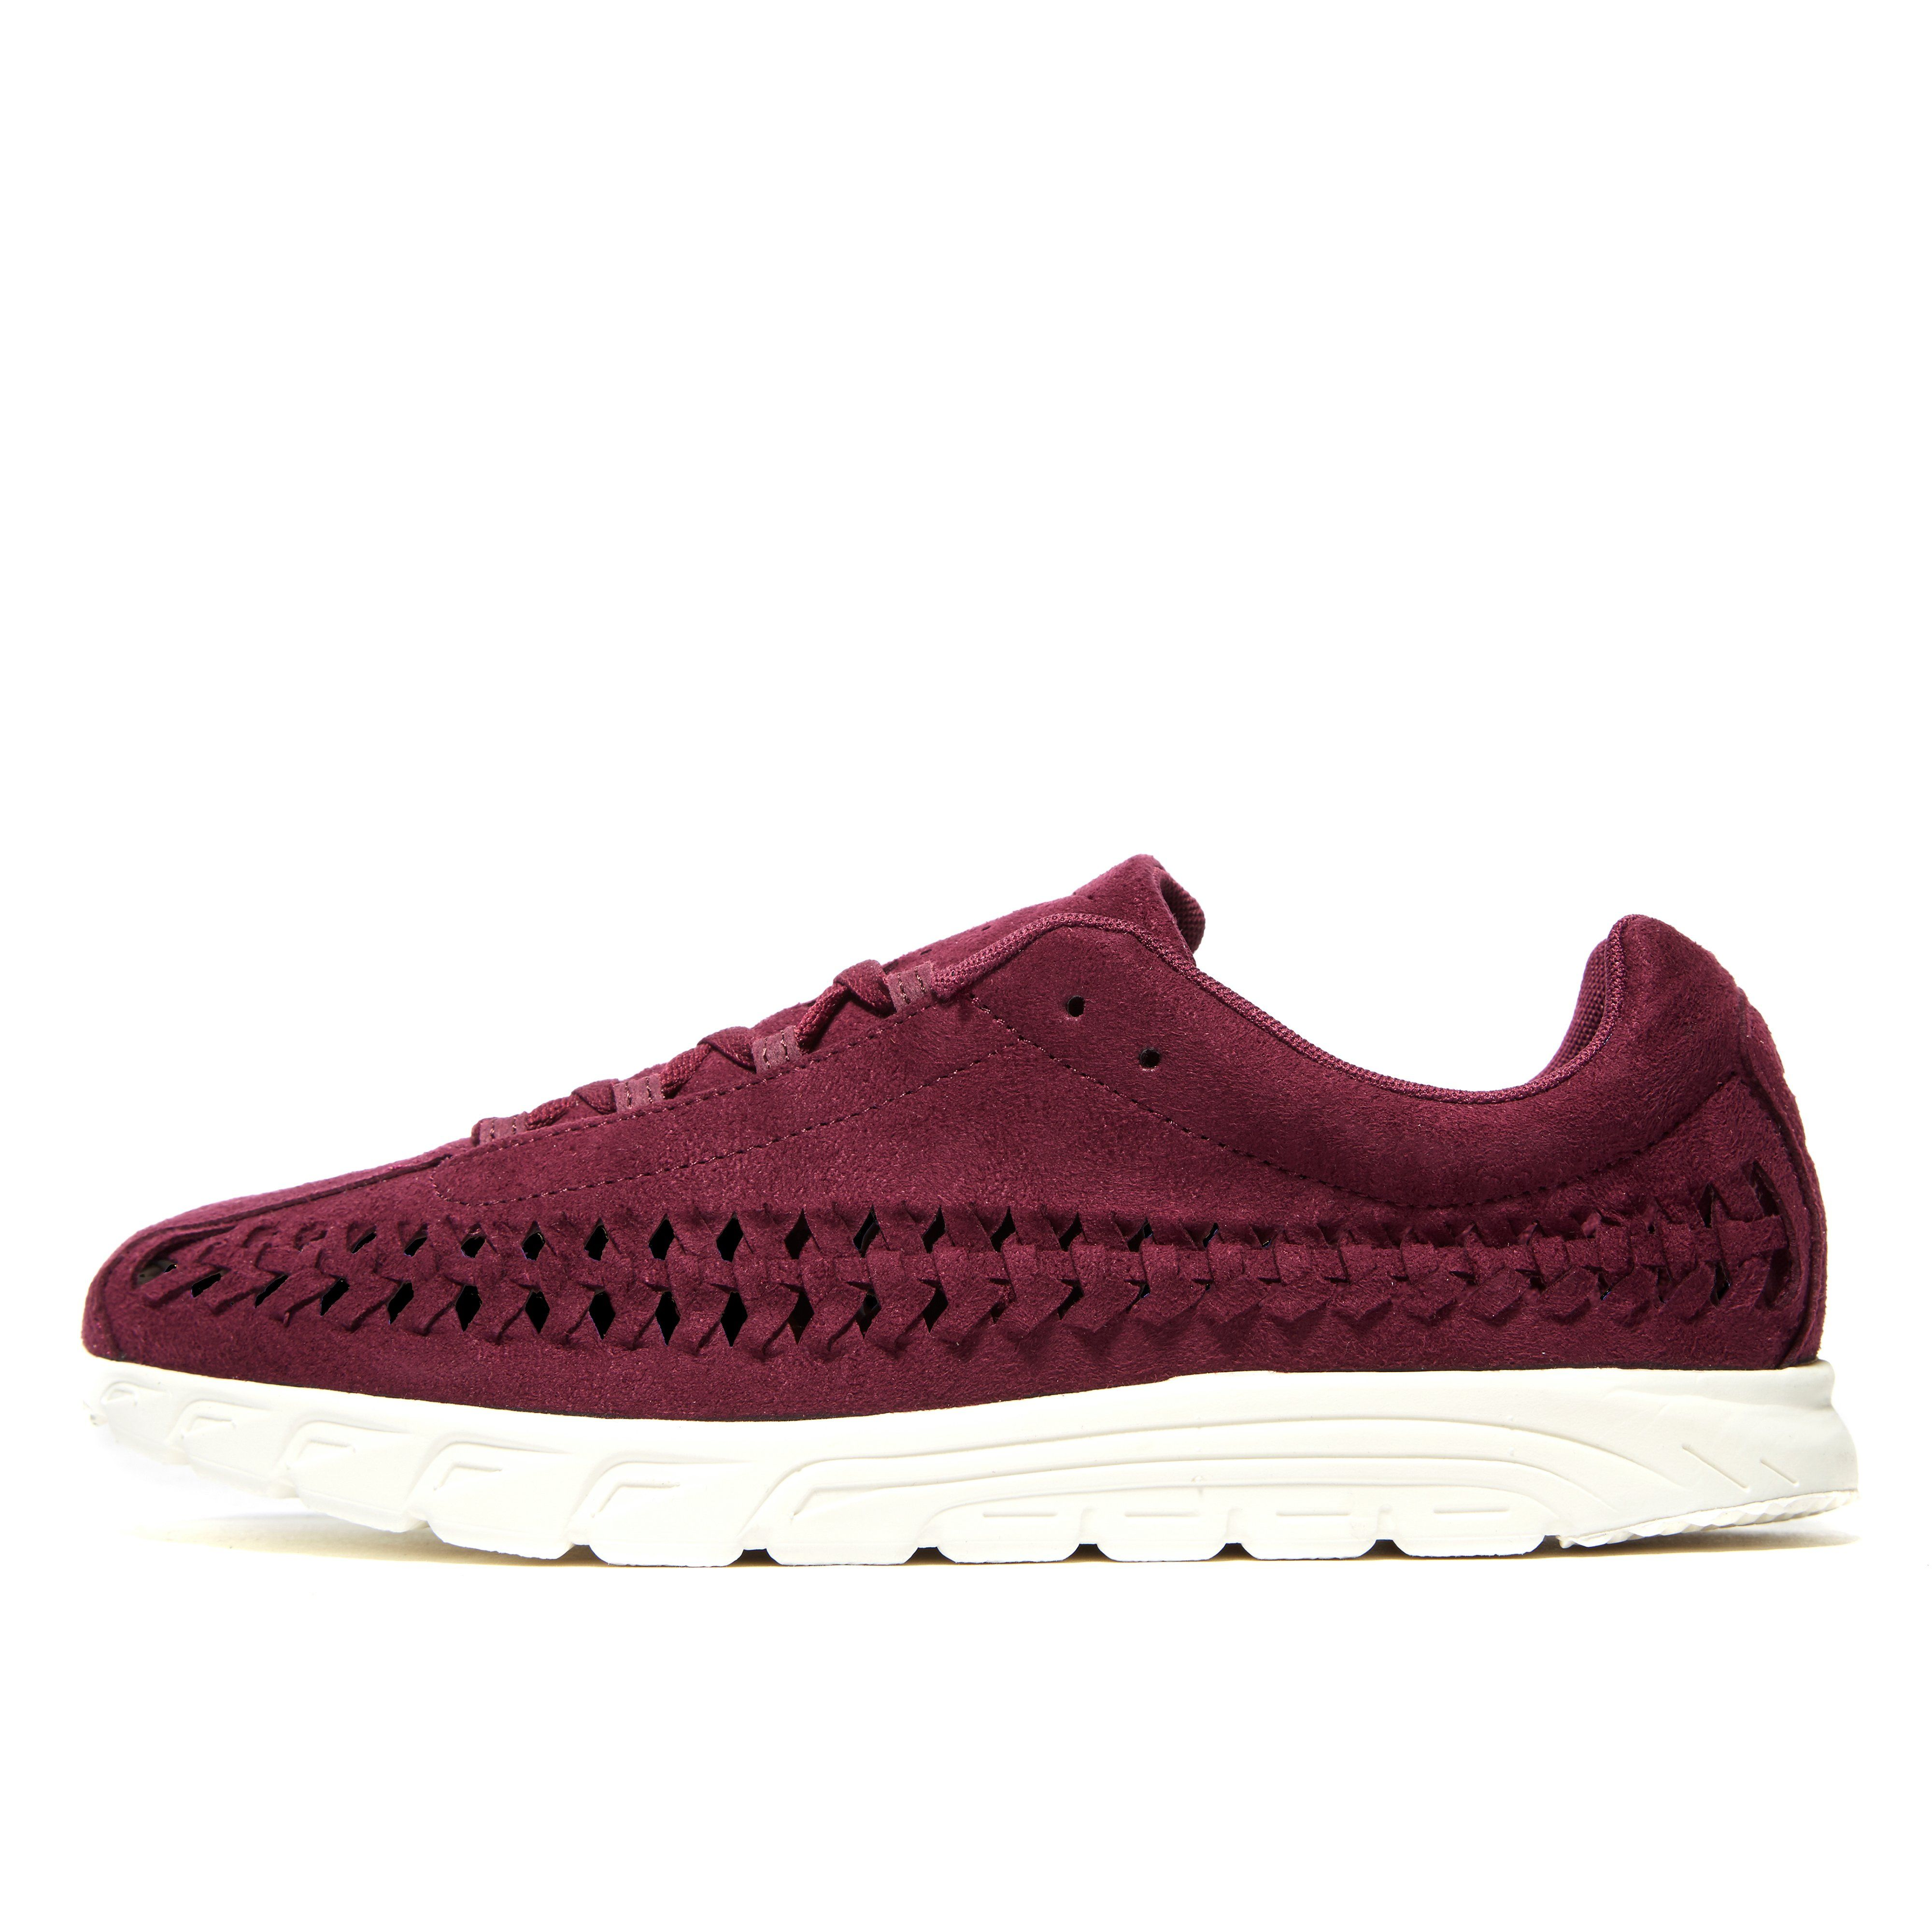 low priced 985c6 514b4 Nike Mayfly Woven   JD Sports Ireland